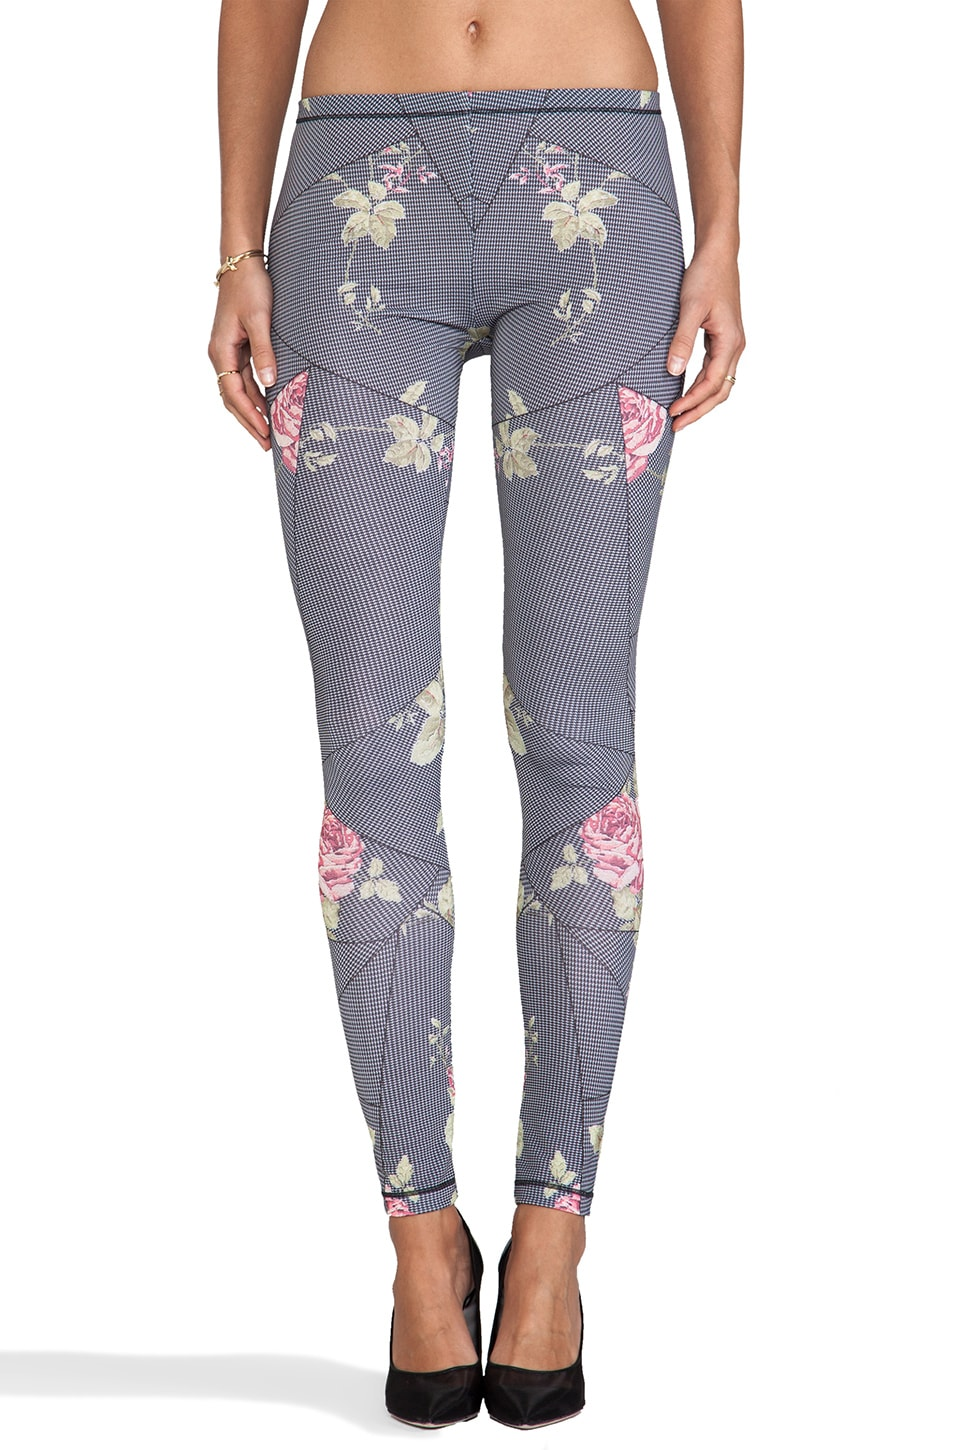 McQ Alexander McQueen Printed Legging in Antique Rose